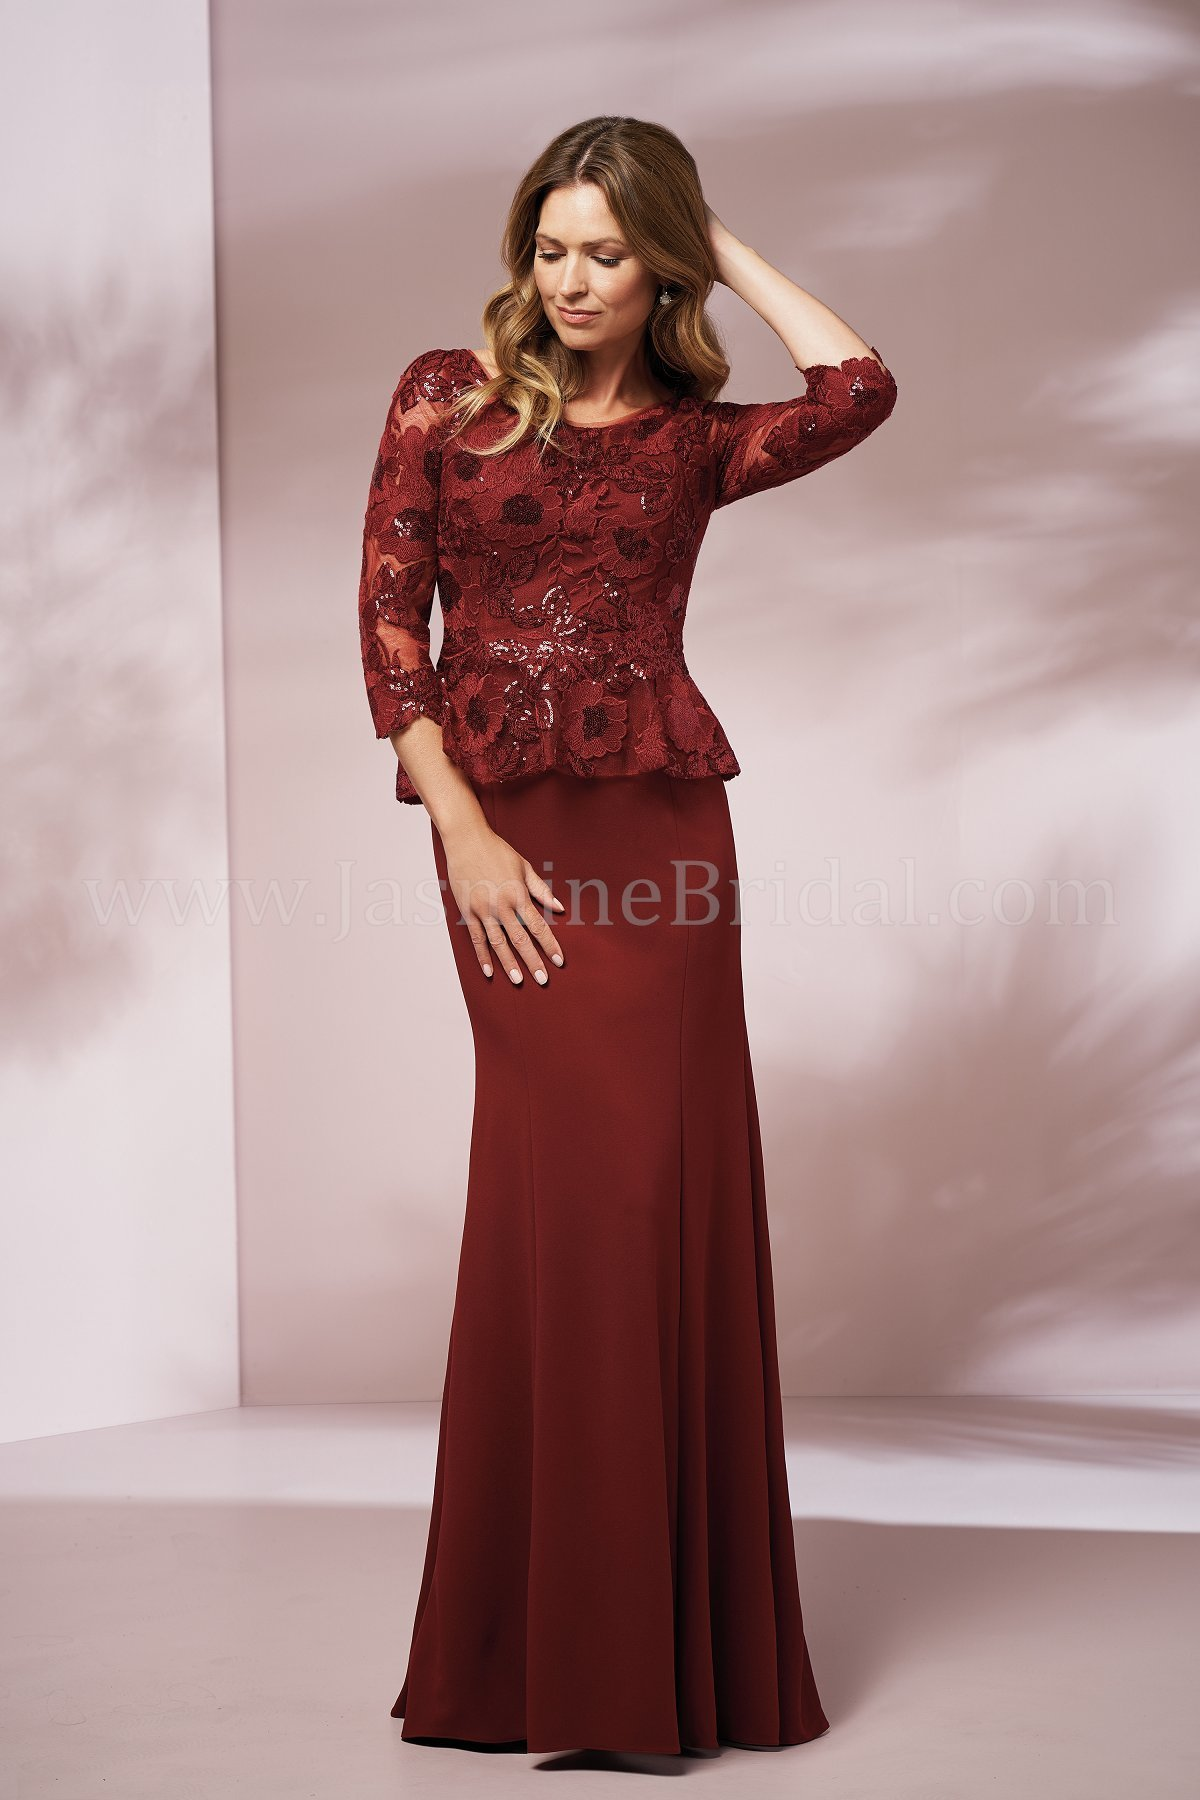 mother-of-the-bride-dresses-J205013-F